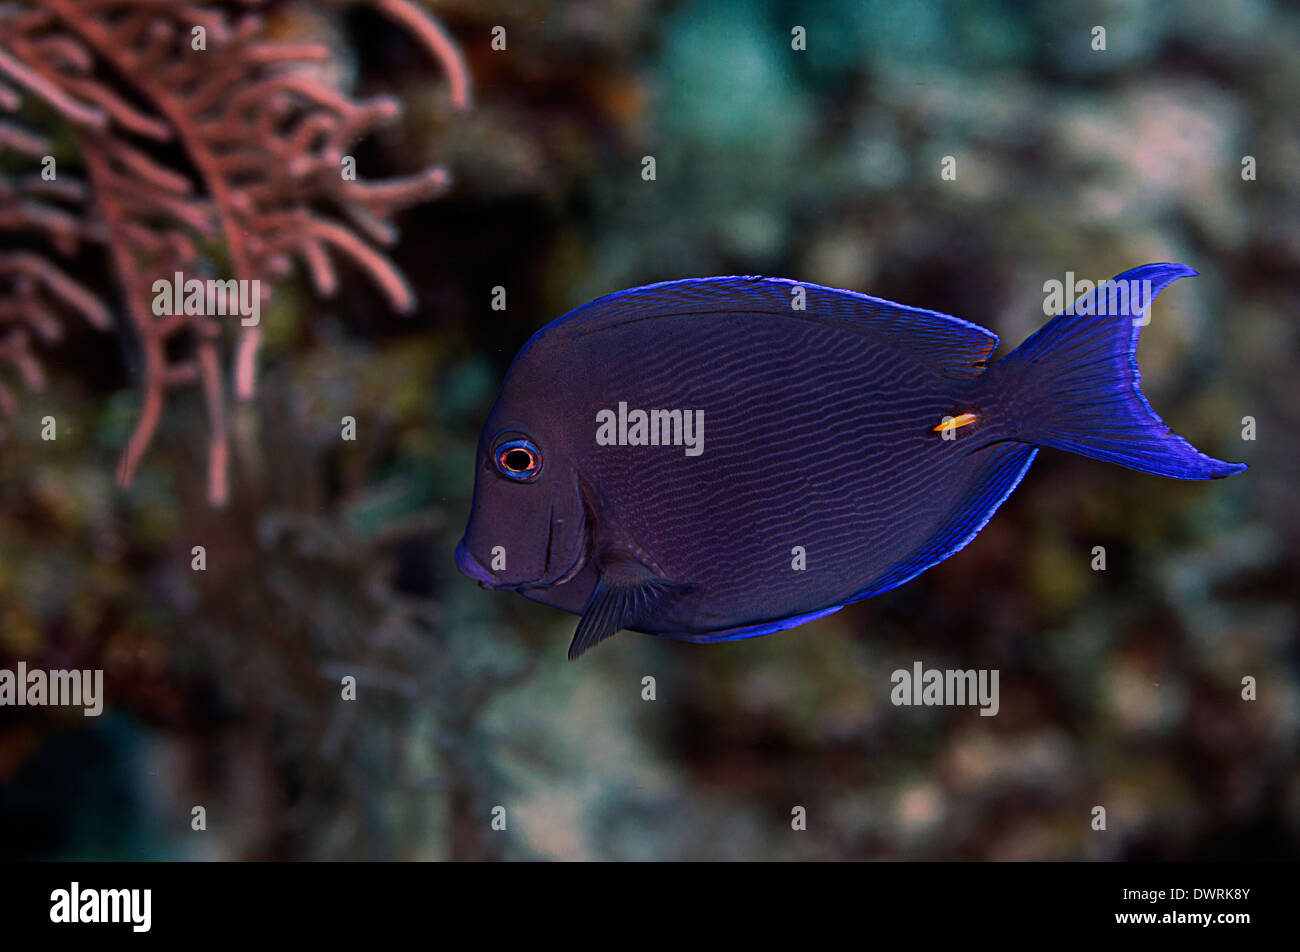 A blue tang fish in the wild in Roatan, Honduras. - Stock Image